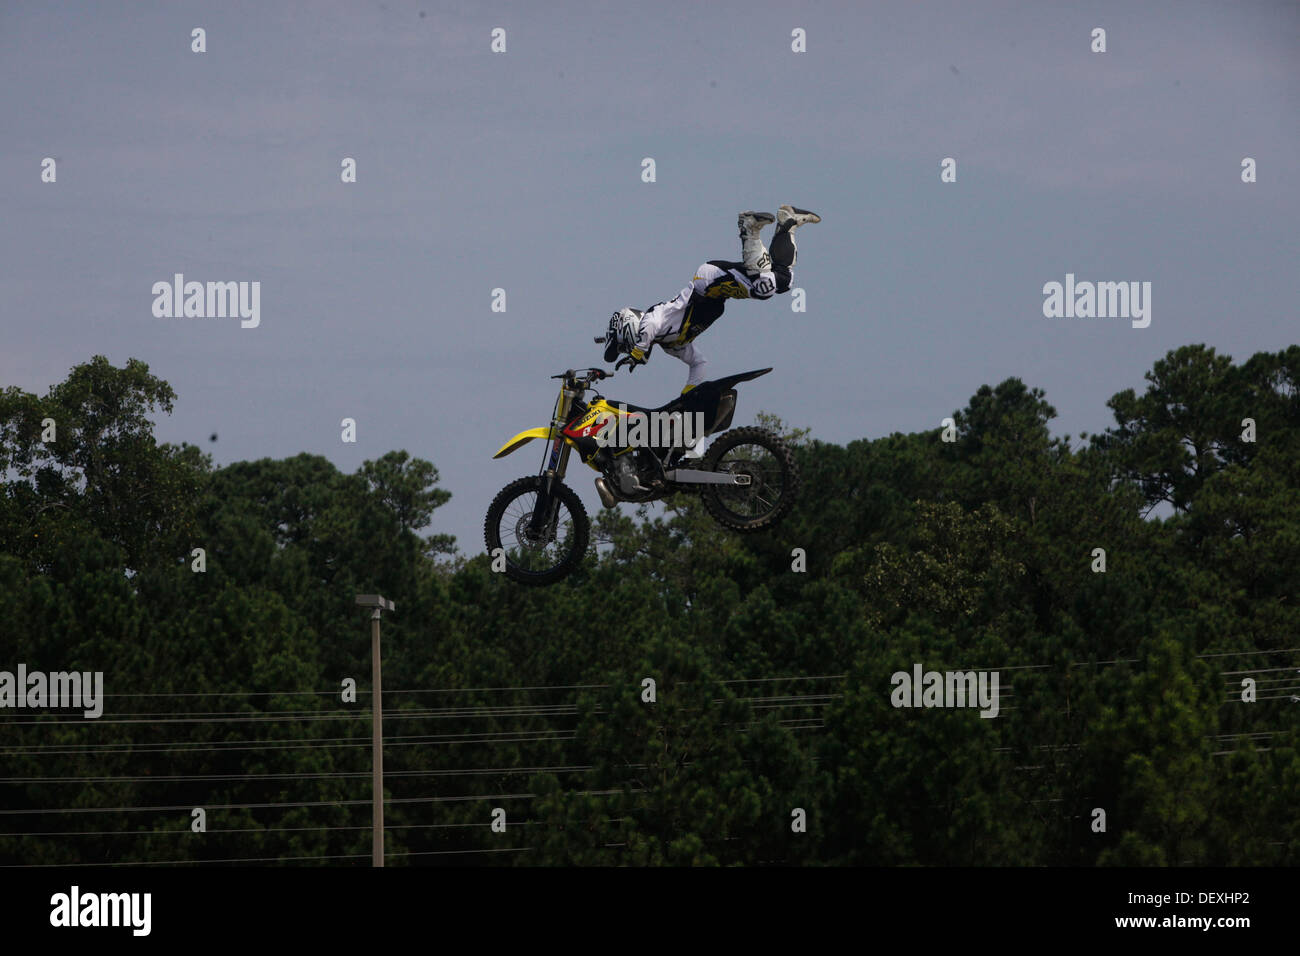 Dustin Miller, freestyle motocross rider, performs a superman seat grab trick for service members and families during an event held at the Marine Corps Exchange aboard Marine Corps Base Camp Lejeune, Sept. 13. - Stock Image